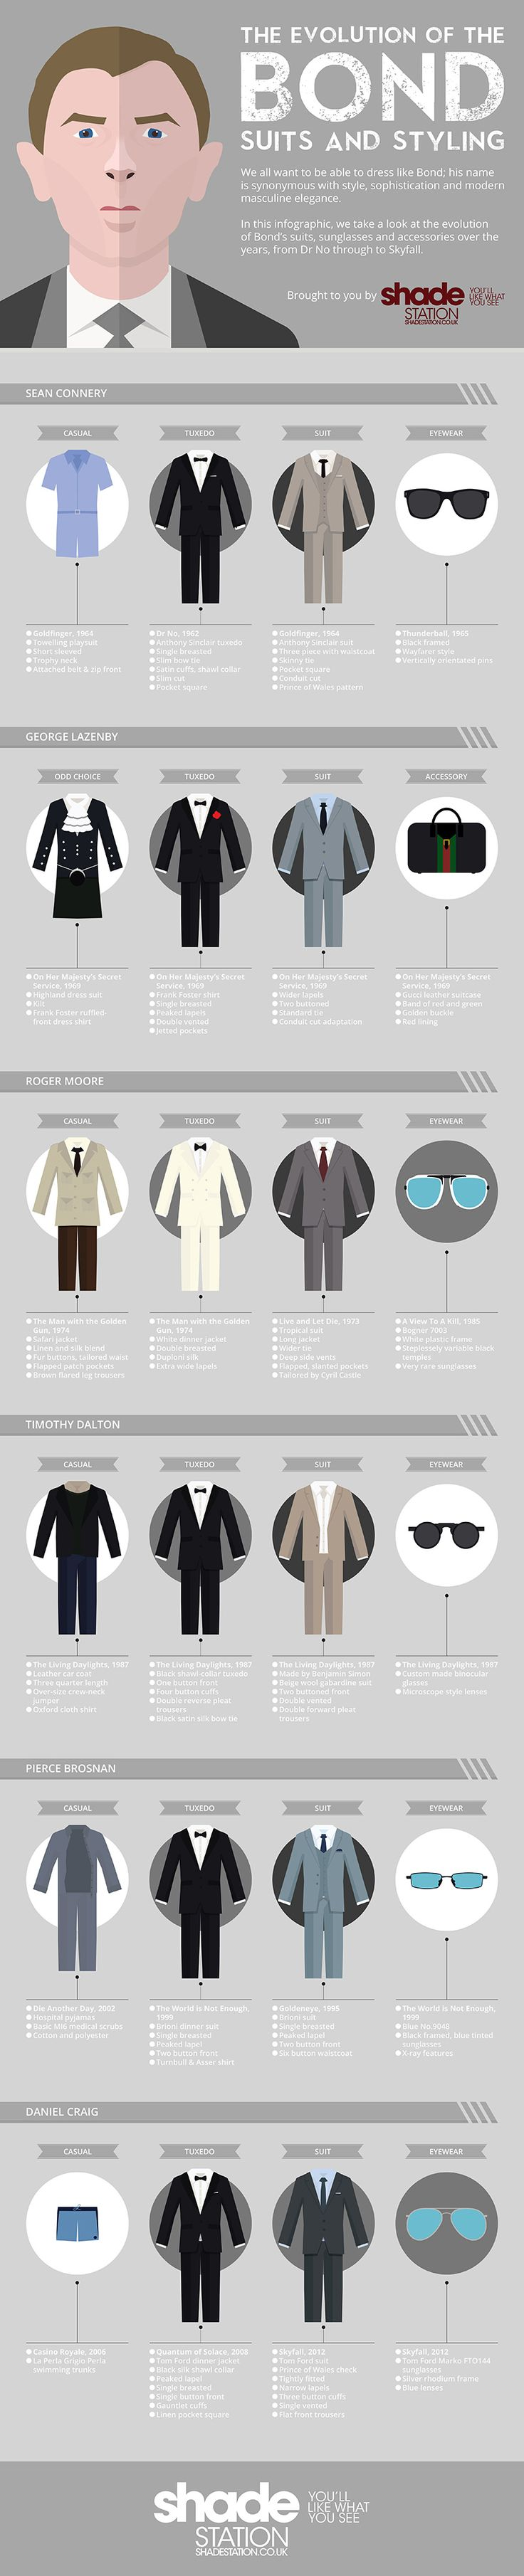 James Bond style from Actor to Actor...